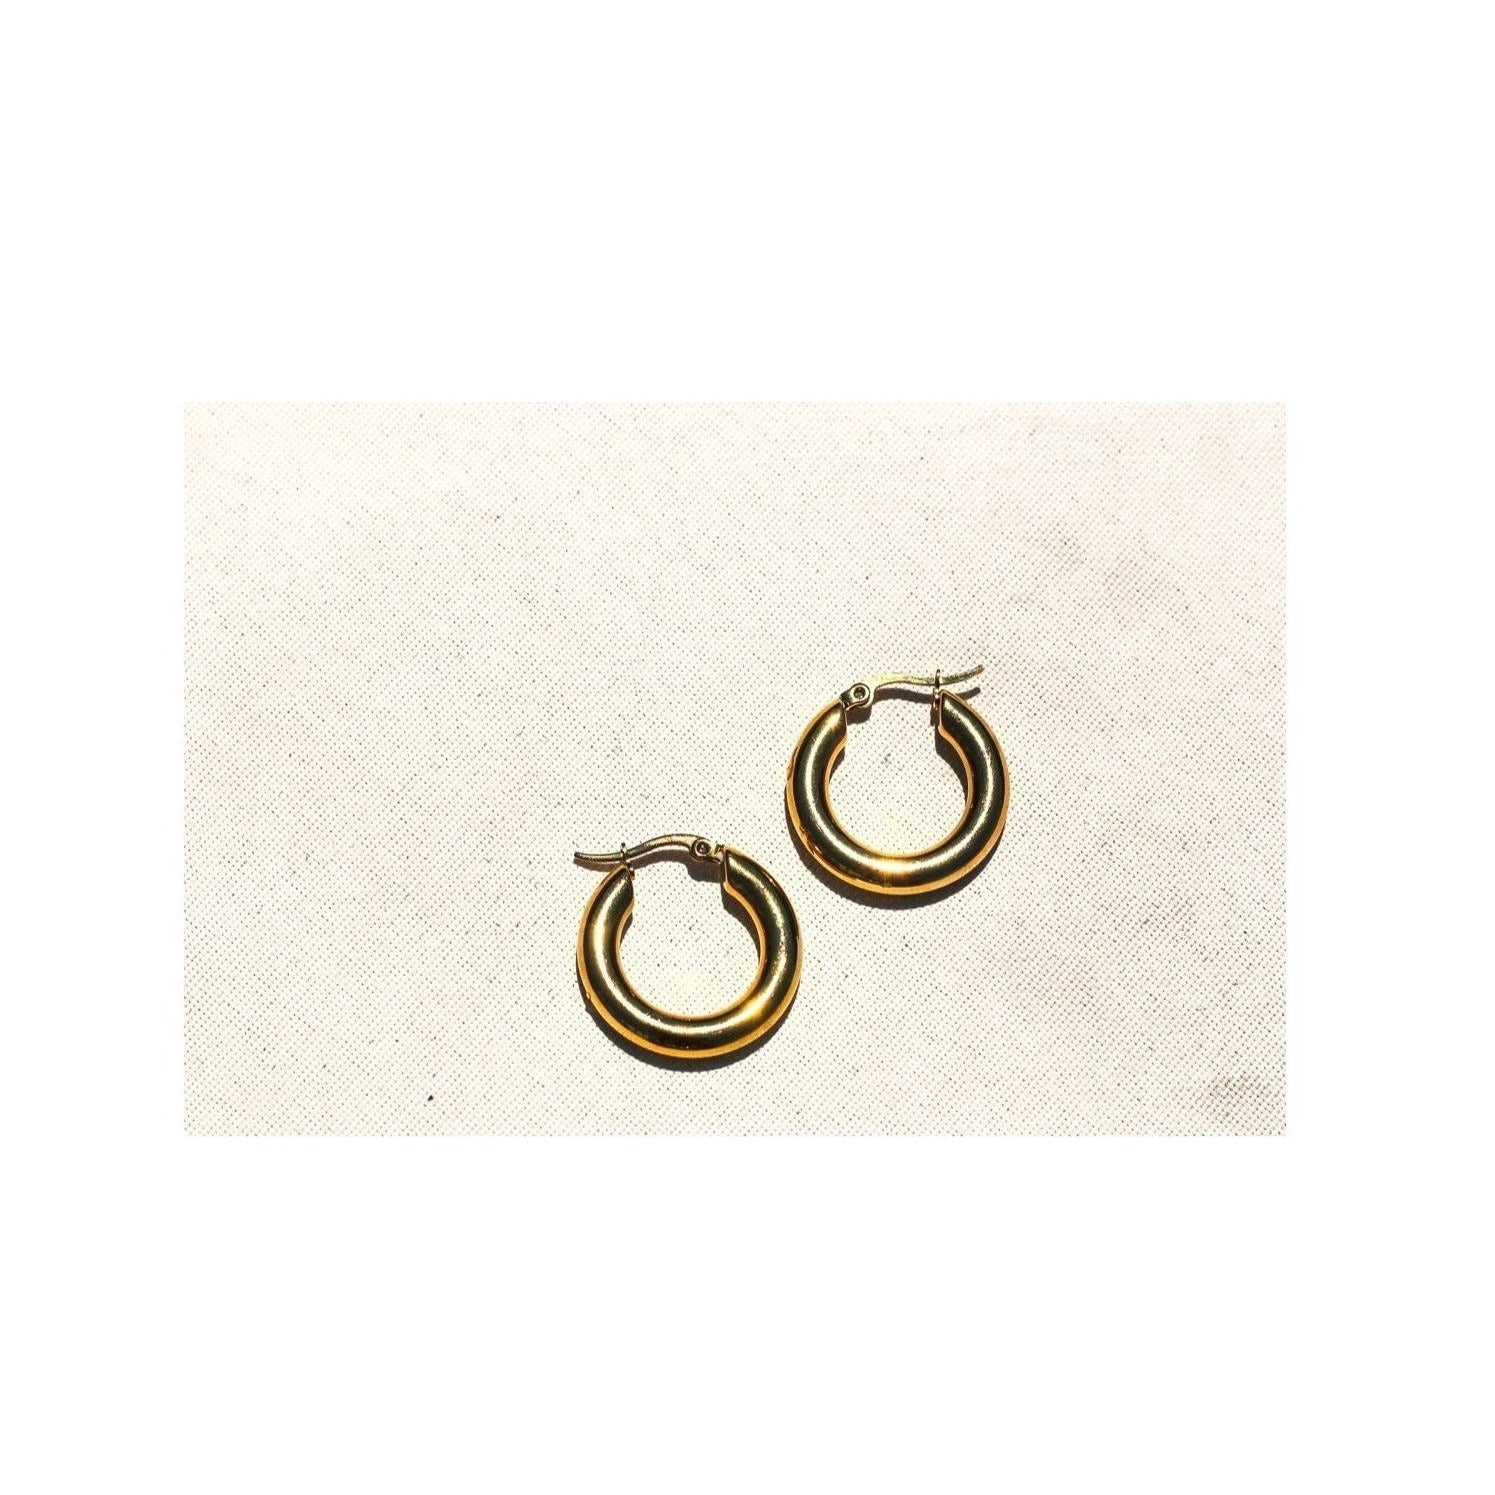 Karma -Medium Thick Gold Hoop Earrings-25mm - IRIS 1956